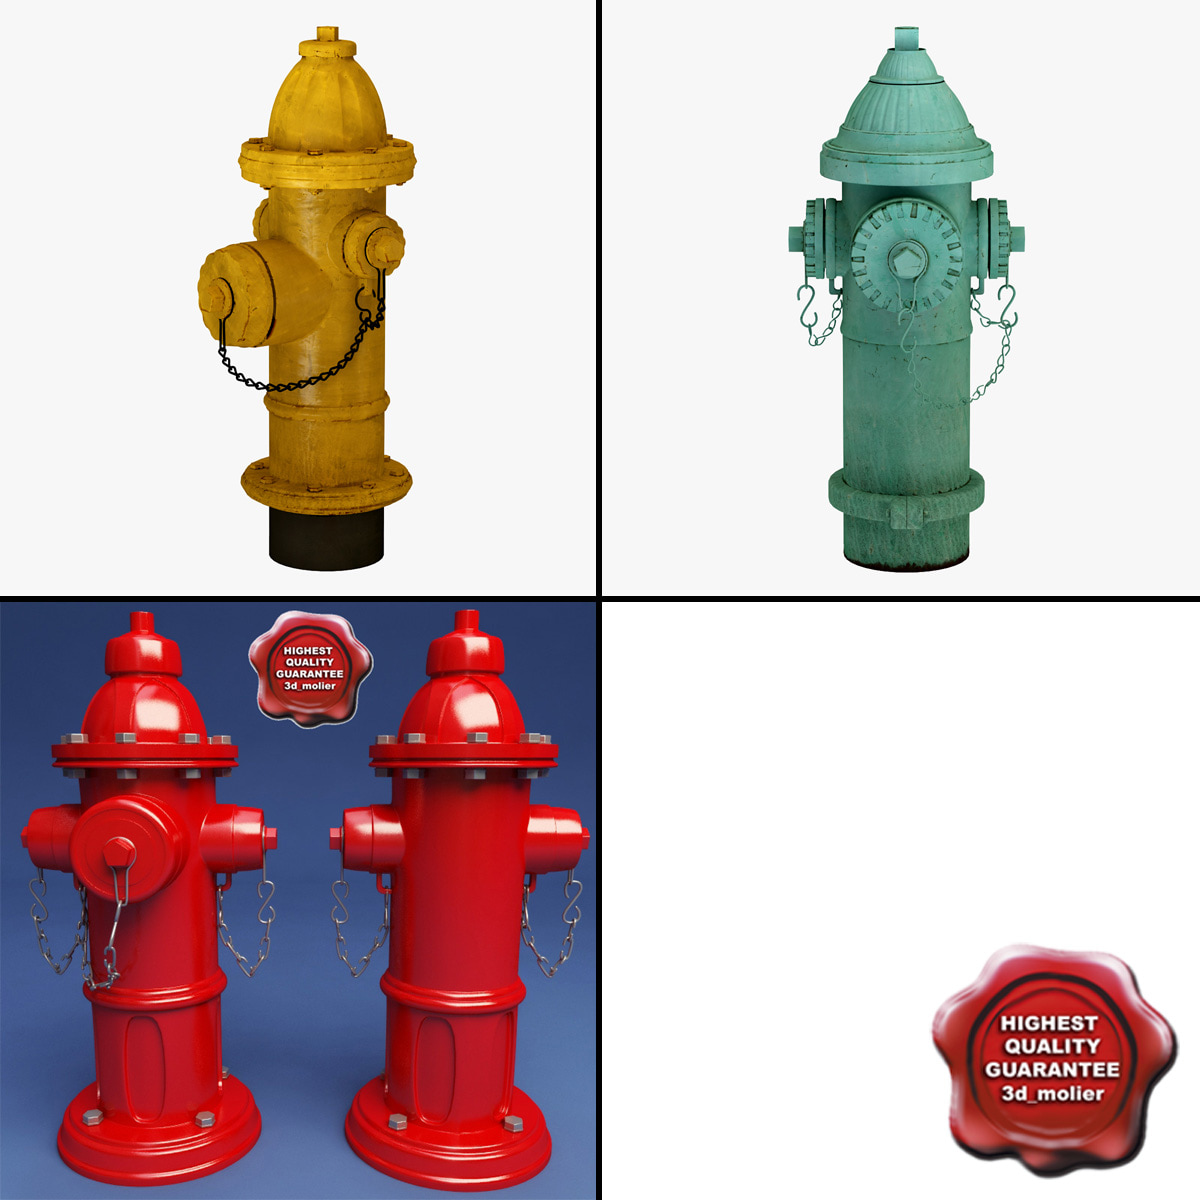 Fire_Hydrants_Collection_000.jpg